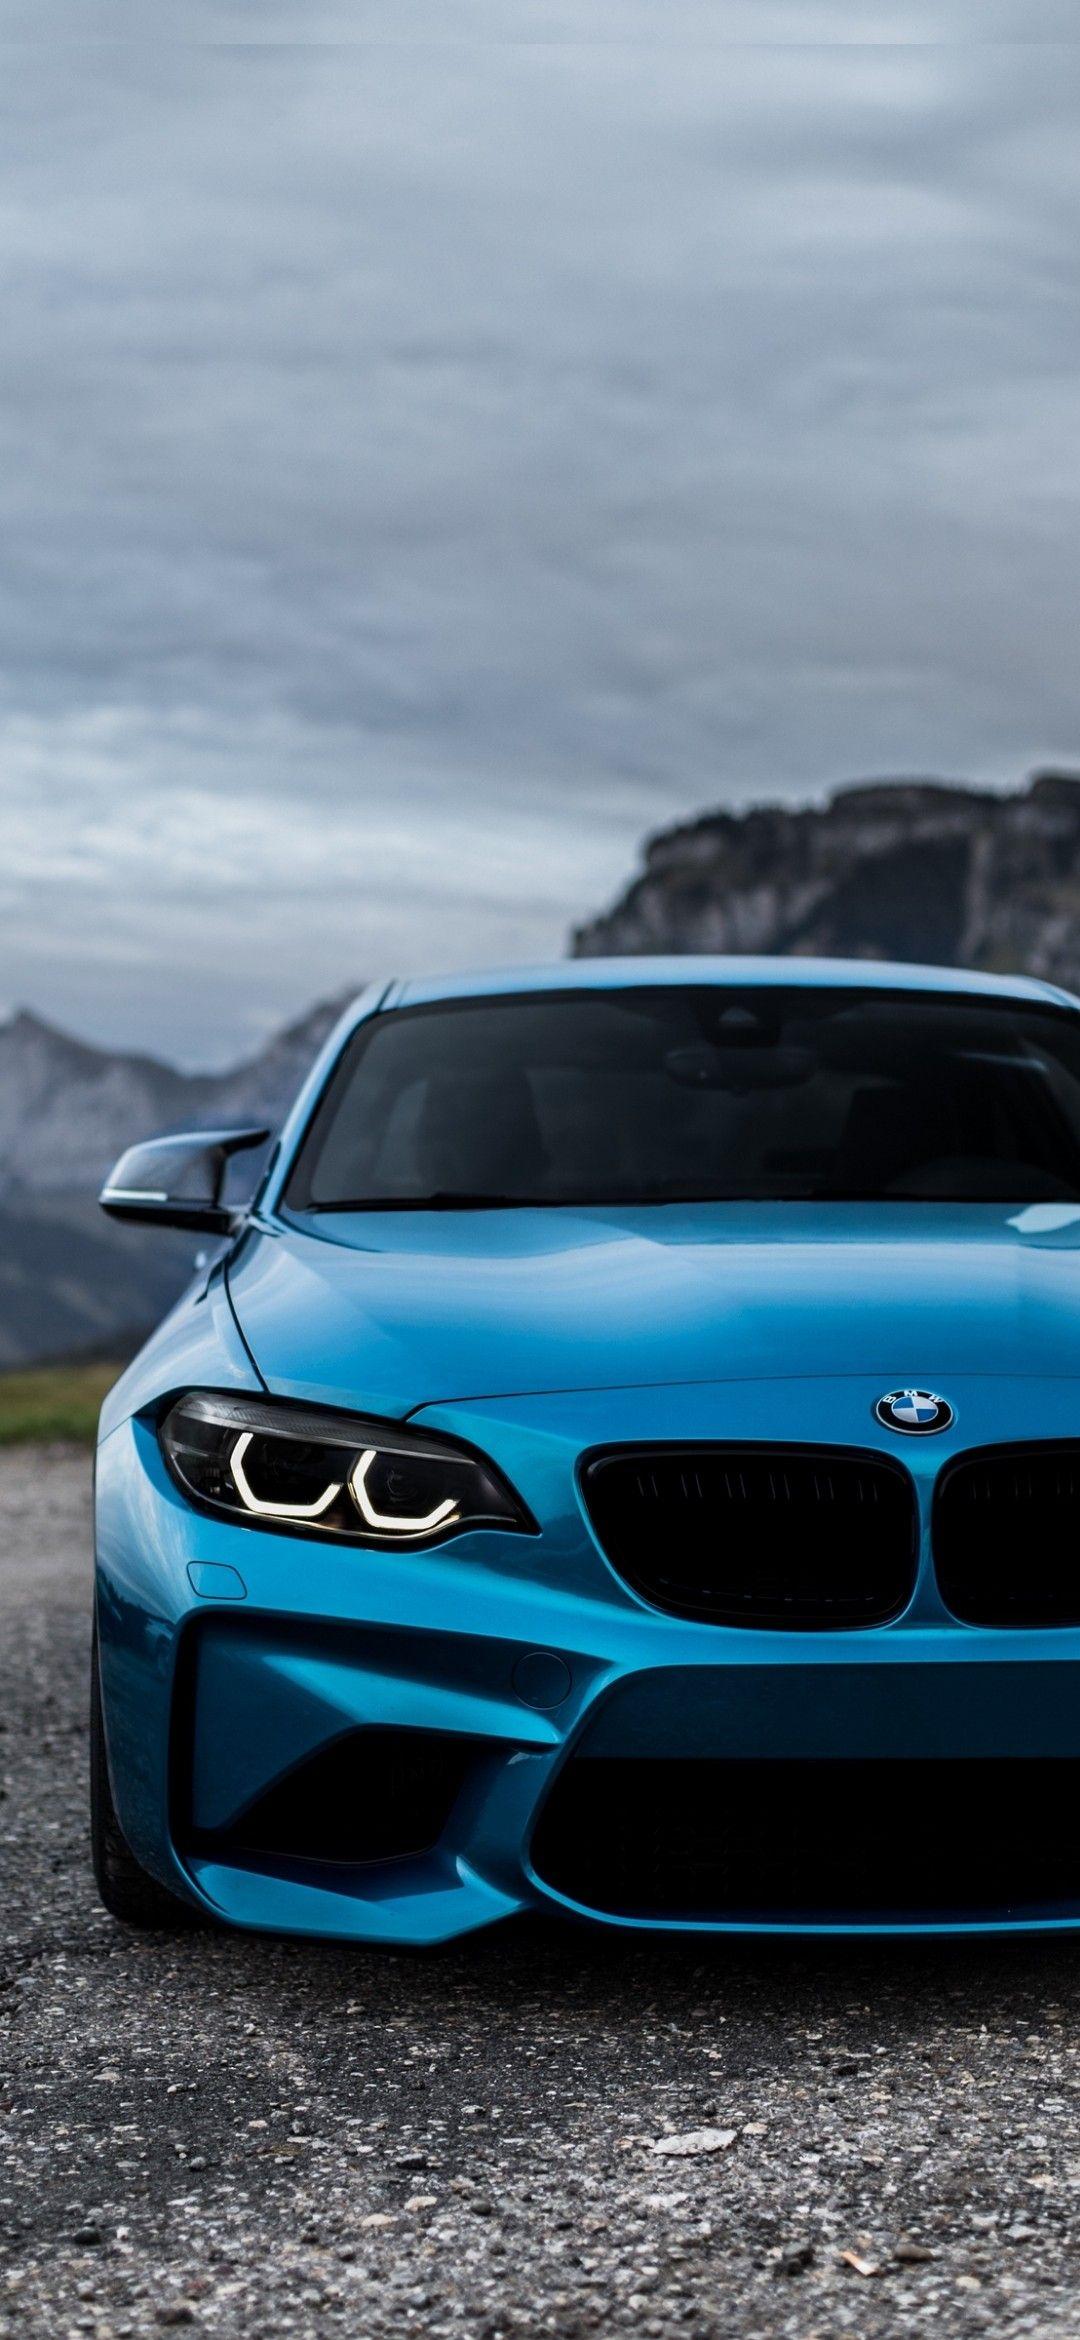 Pin By Agustin Bogado On Cars Motorcycle Bmw Sports Car Bmw Wallpapers Car Iphone Wallpaper